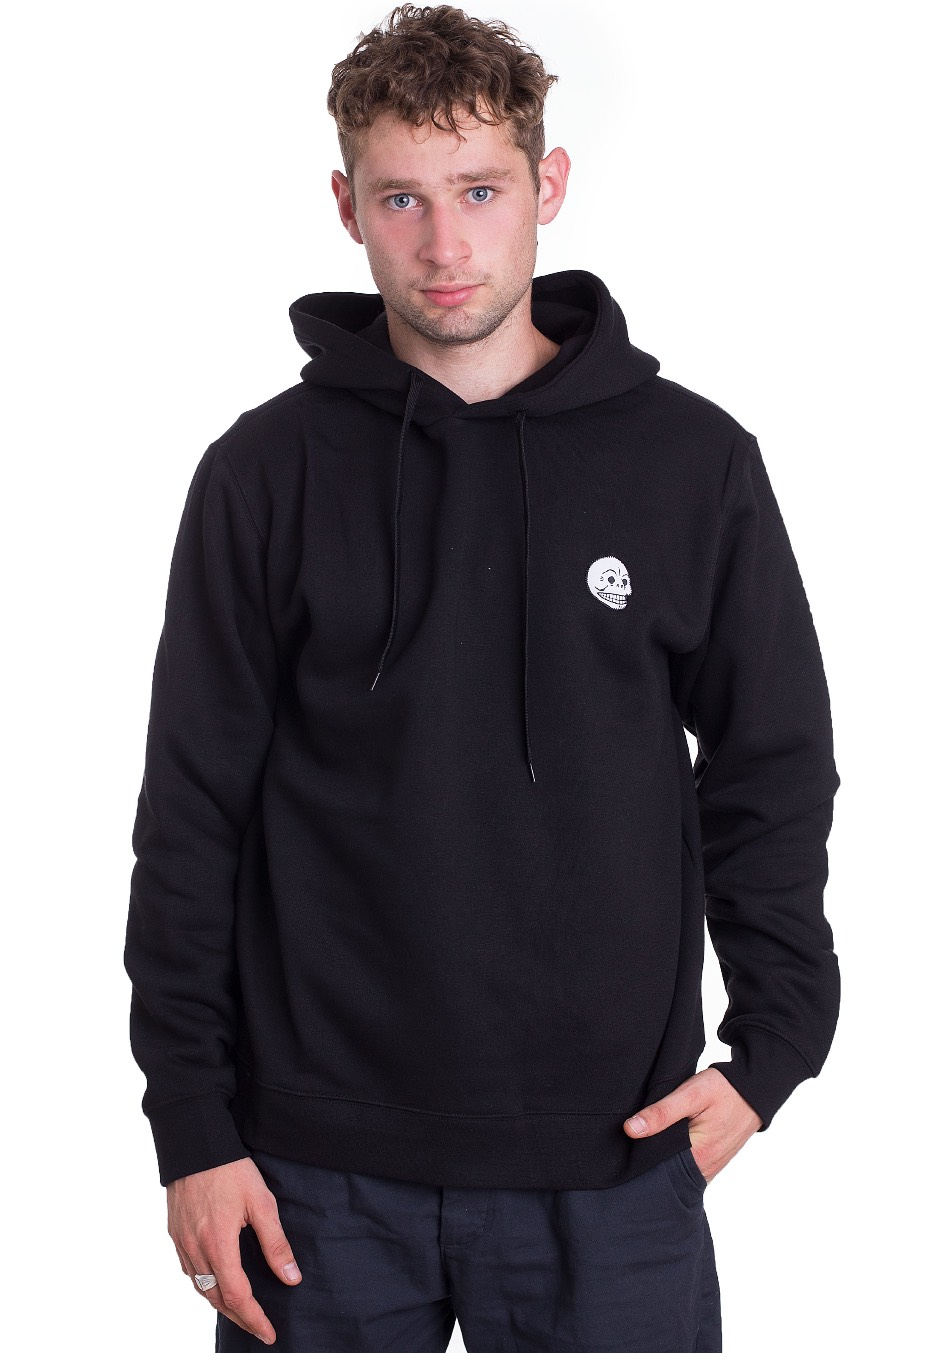 8b75a7aef Cheap Monday - Skull Badge Black - Hoodie - Impericon.com AU